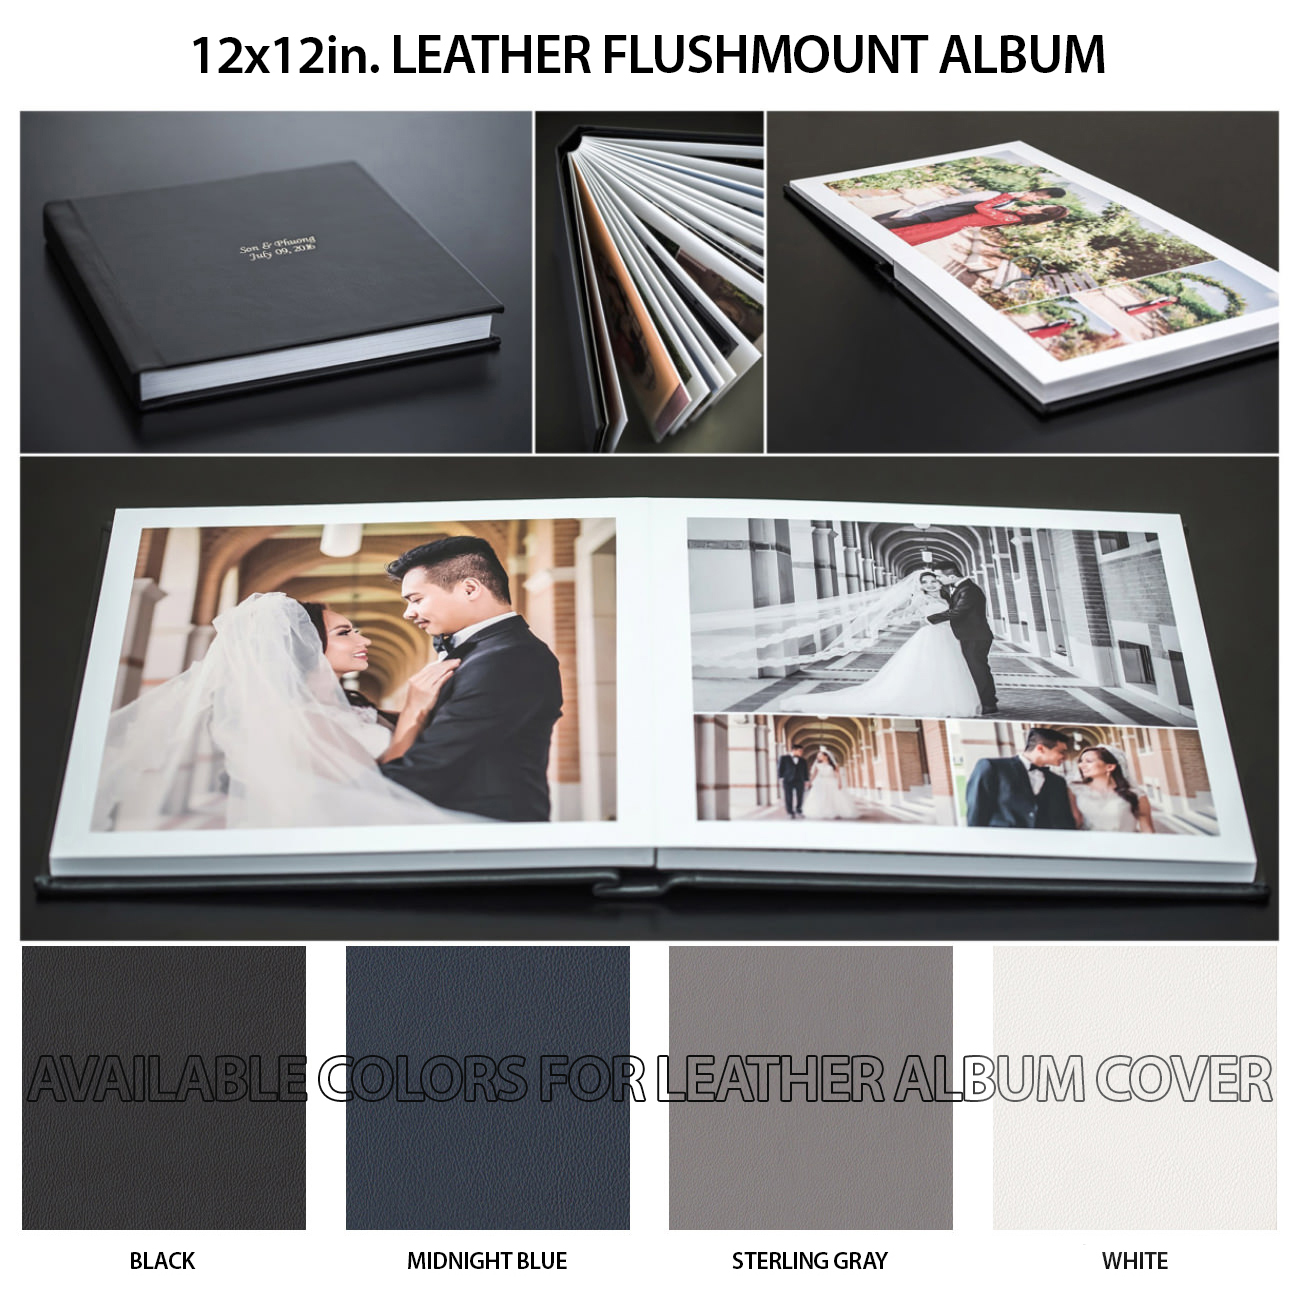 LEATHER FLUSHMOUNT PHOTO BOOK $500 - One 12x12 in. Leather Flushmount photo book (40 sides)Rigid thick pages4 different color to choose from: Black, Midnight Blue, Sterling Gray, WhiteBride & Groom's name & wedding date on leather cover